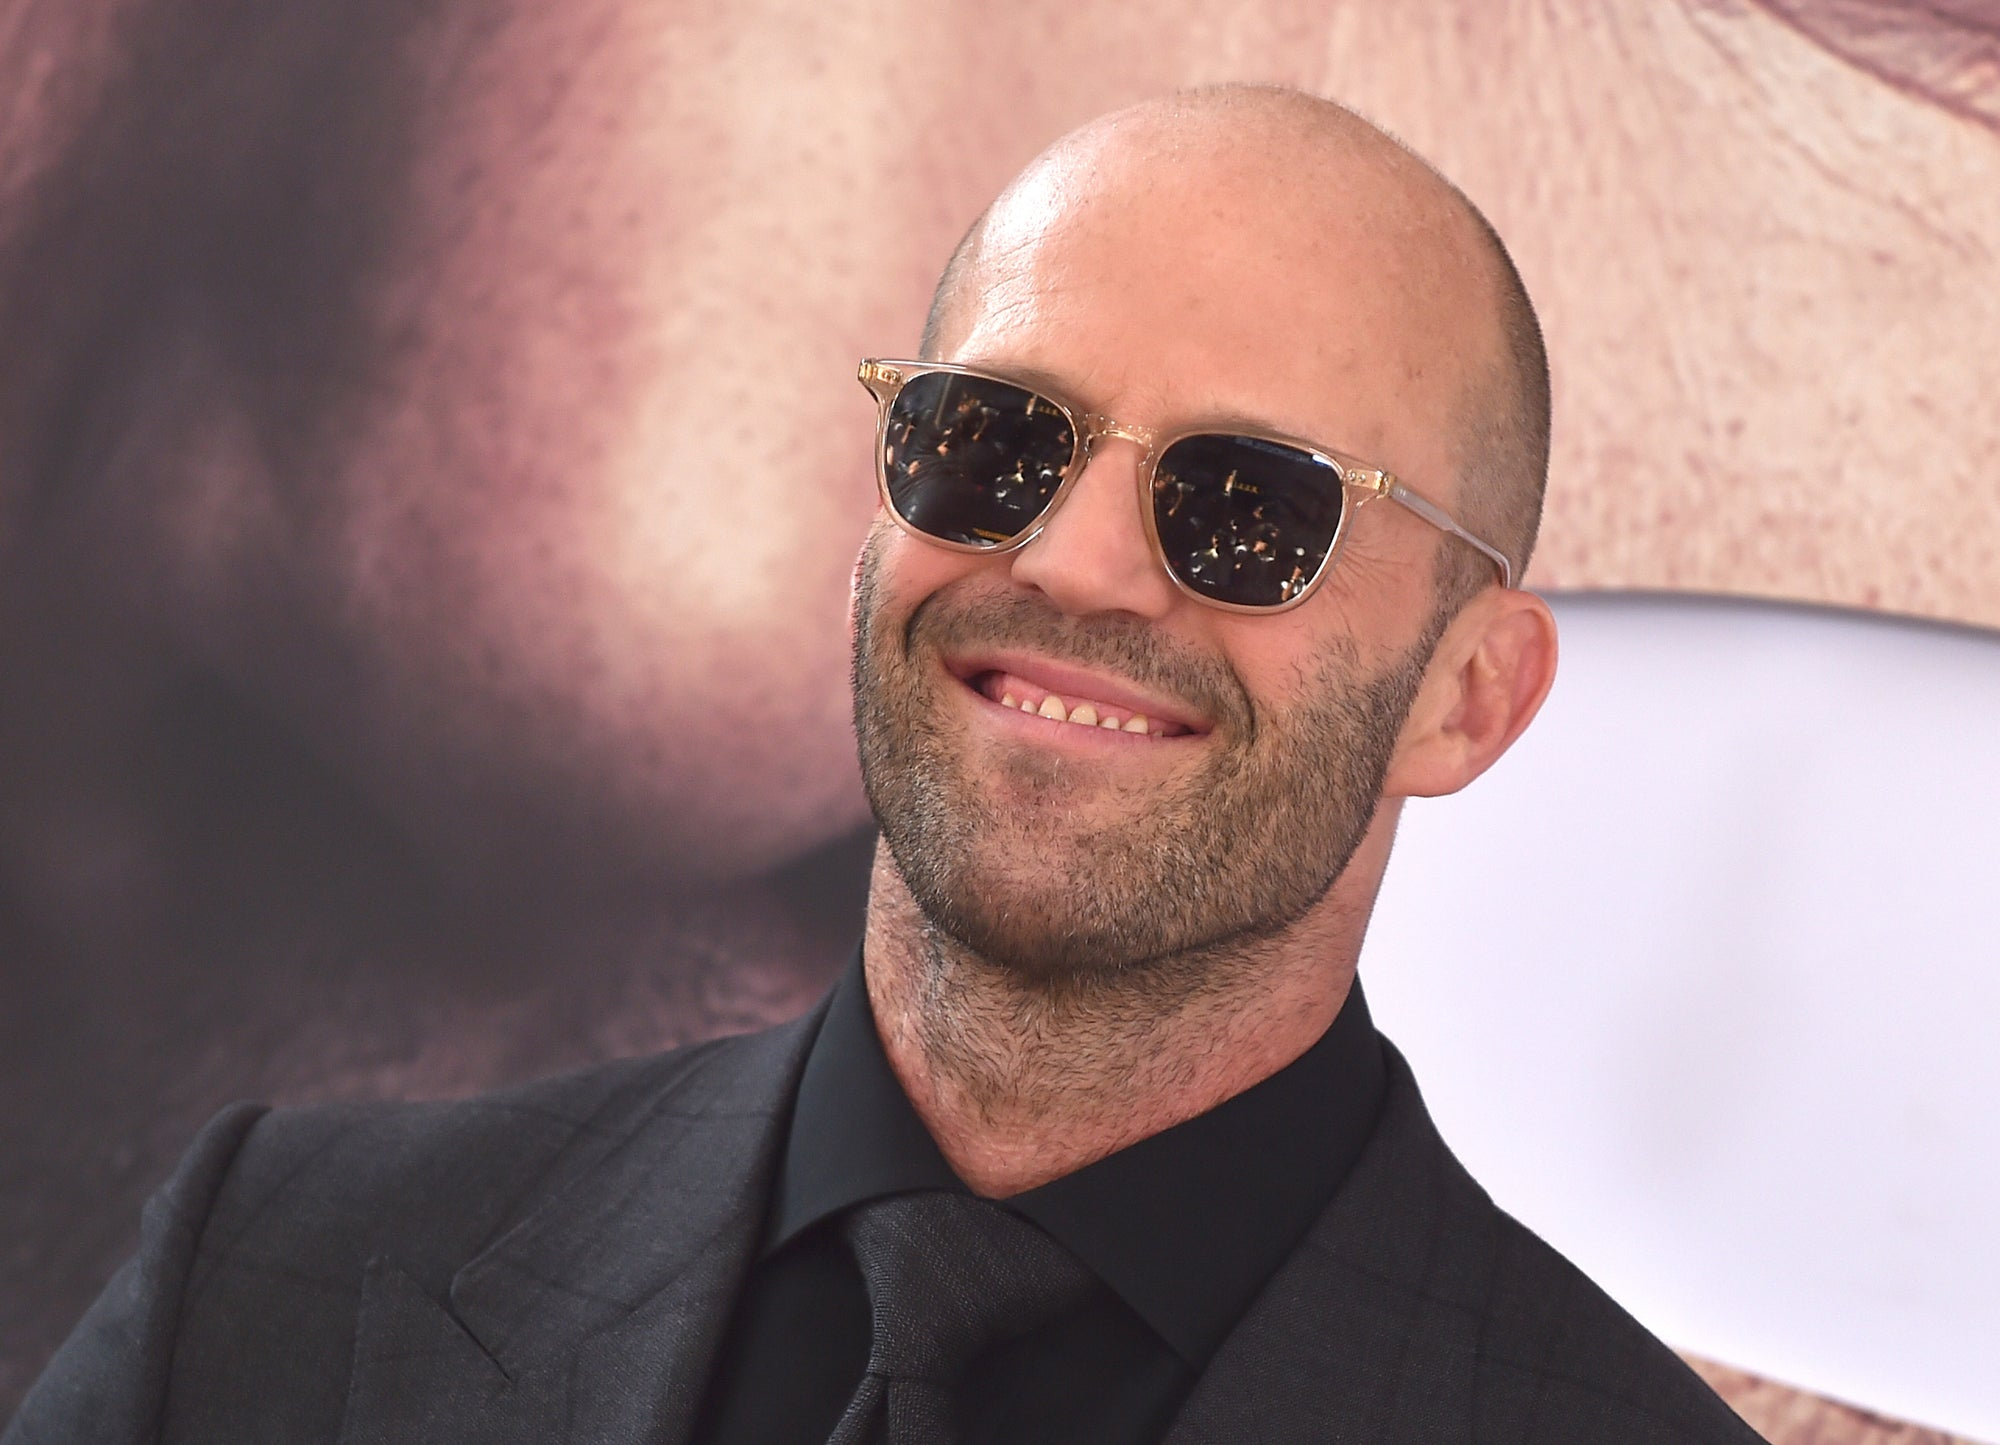 Jason Statham's Real Workout Routine